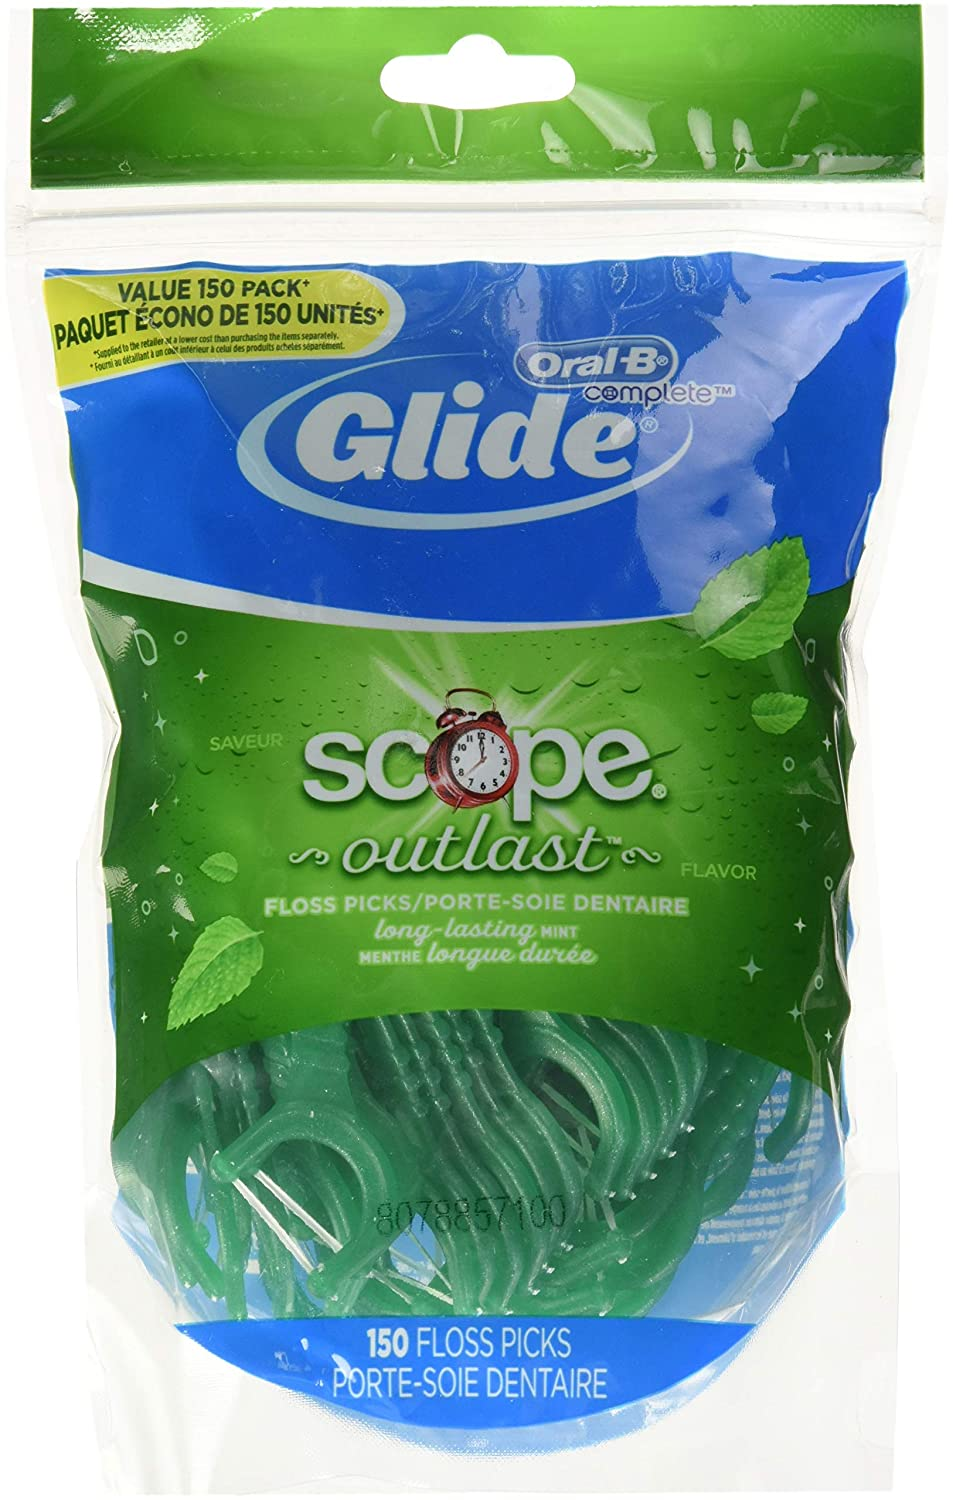 Oral B Glide Complete With Scope Outlast Mint Flavour Floss Picks, 150 Count Procter and Gamble